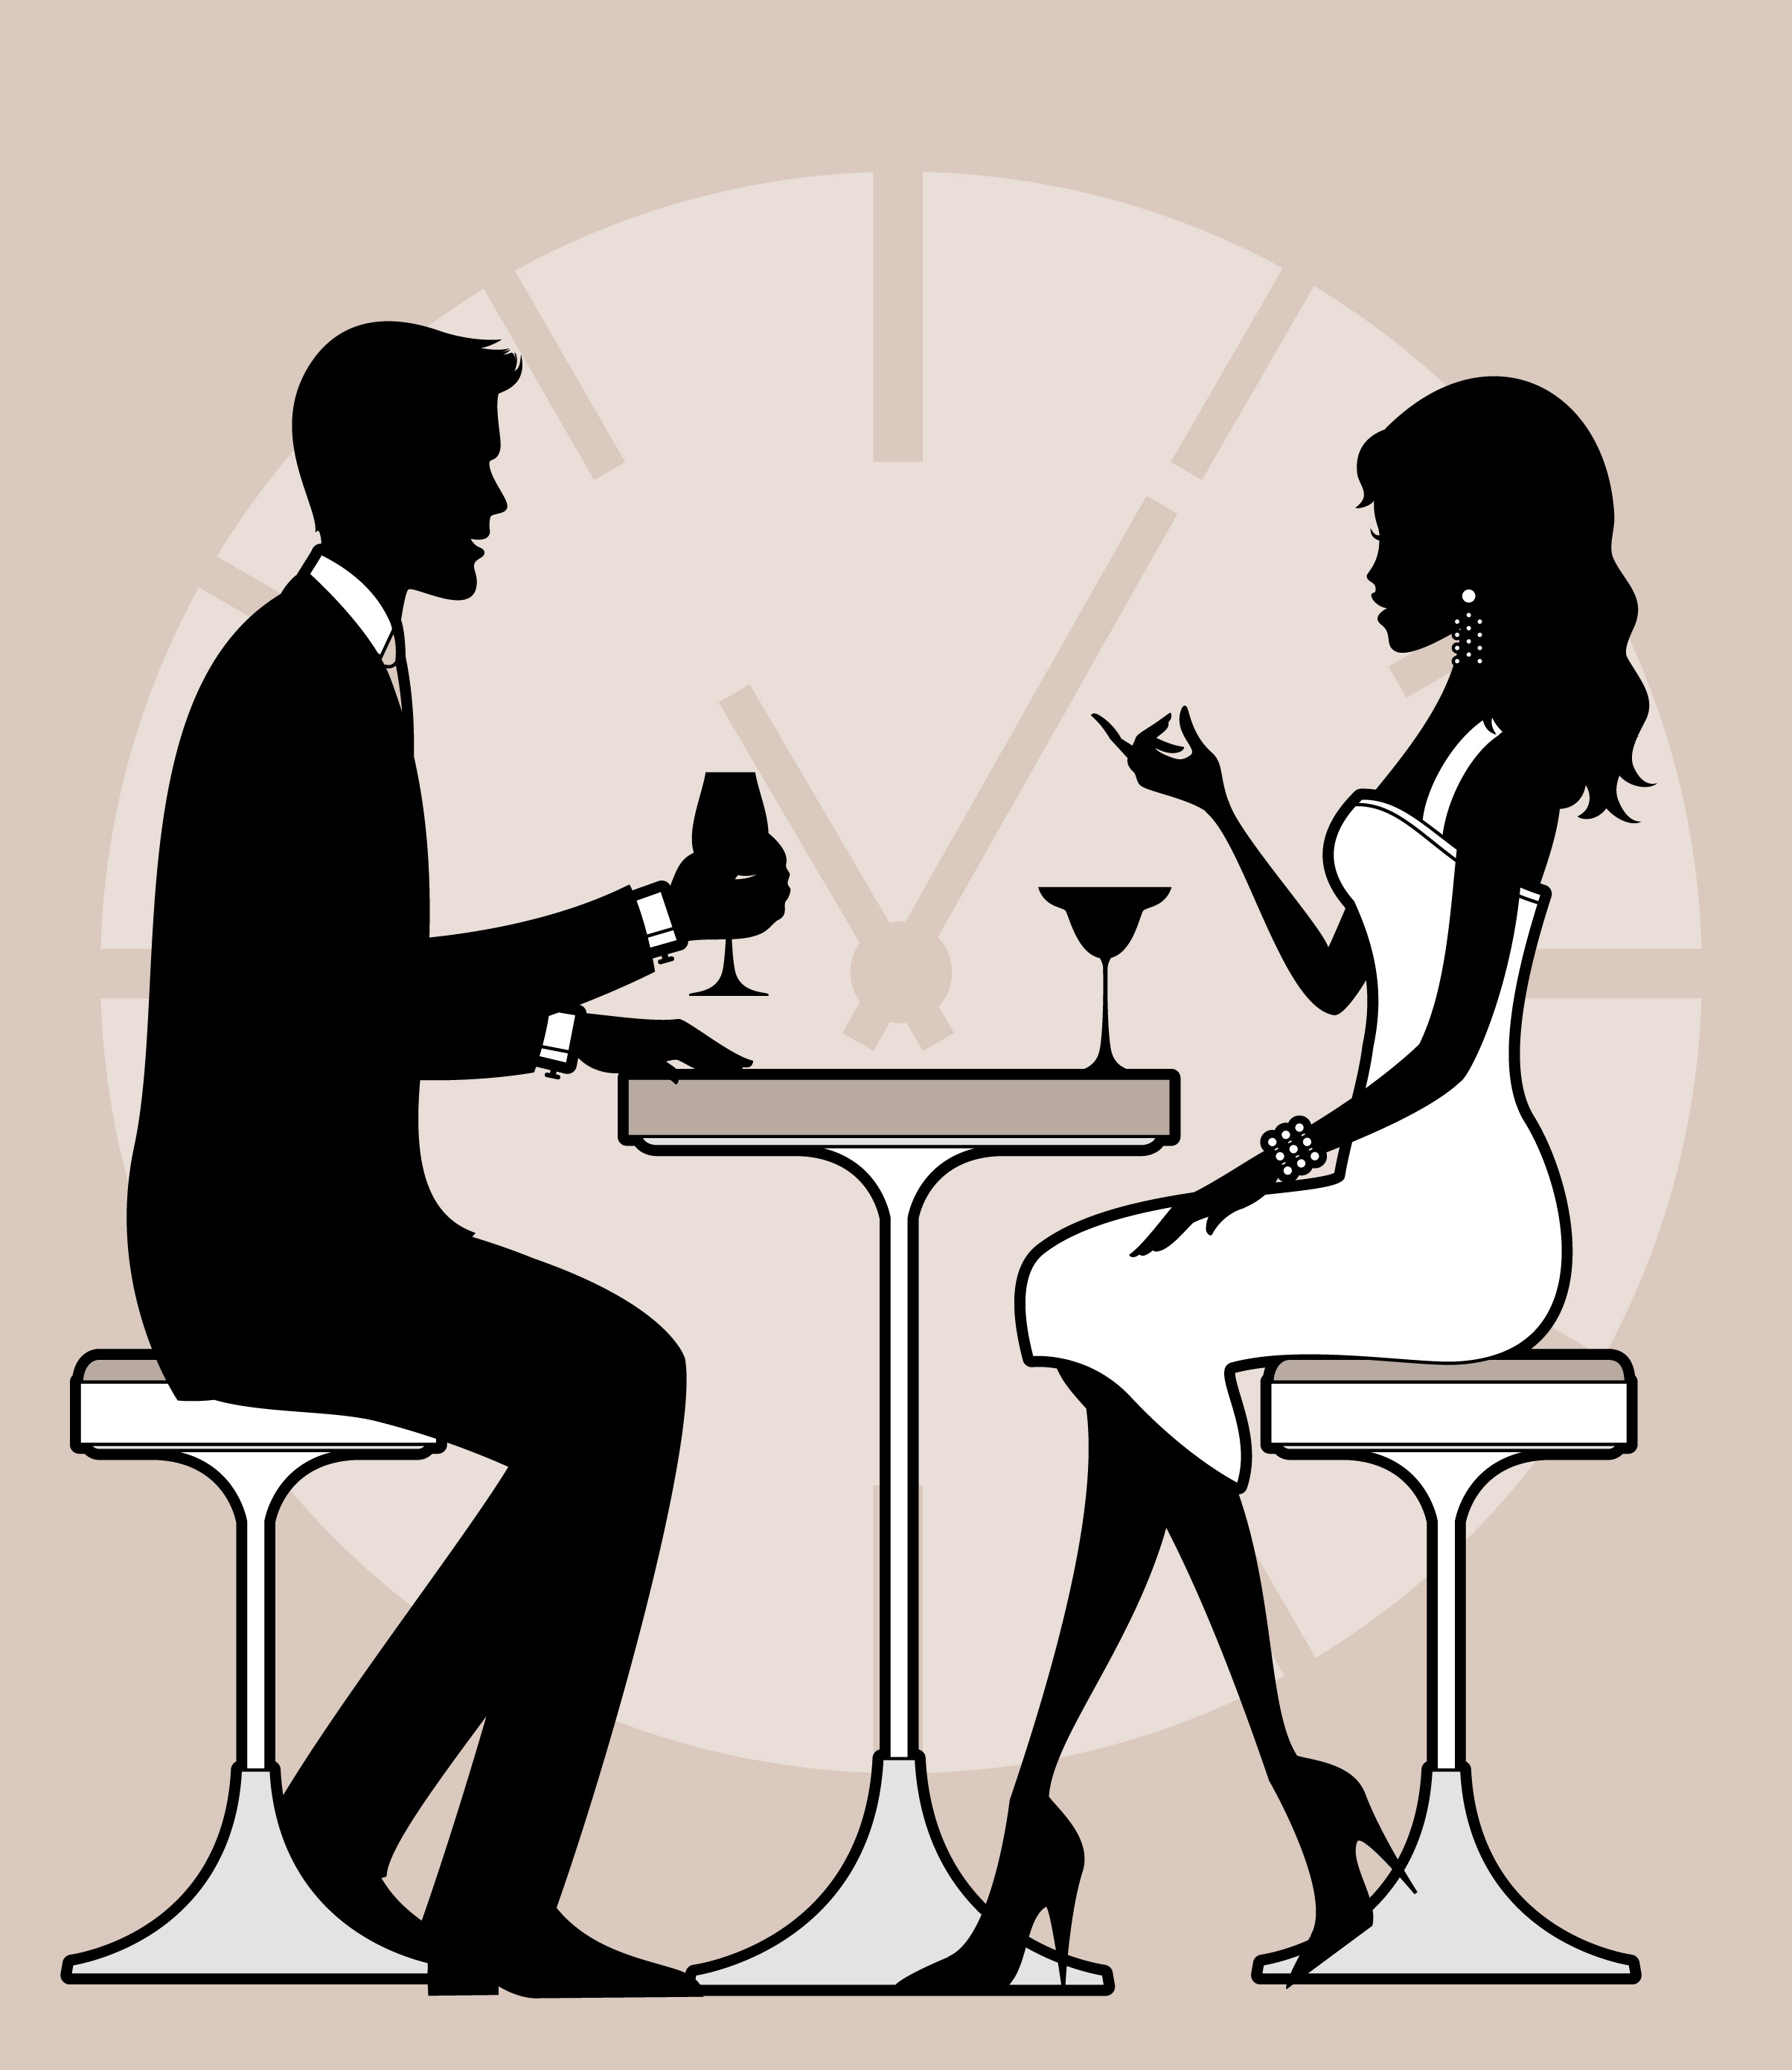 b2b speed dating Over the recent years we have heard about the success of sites like datingcom and the speed-dating events where singles have great opportunities to meet potential partners in life.